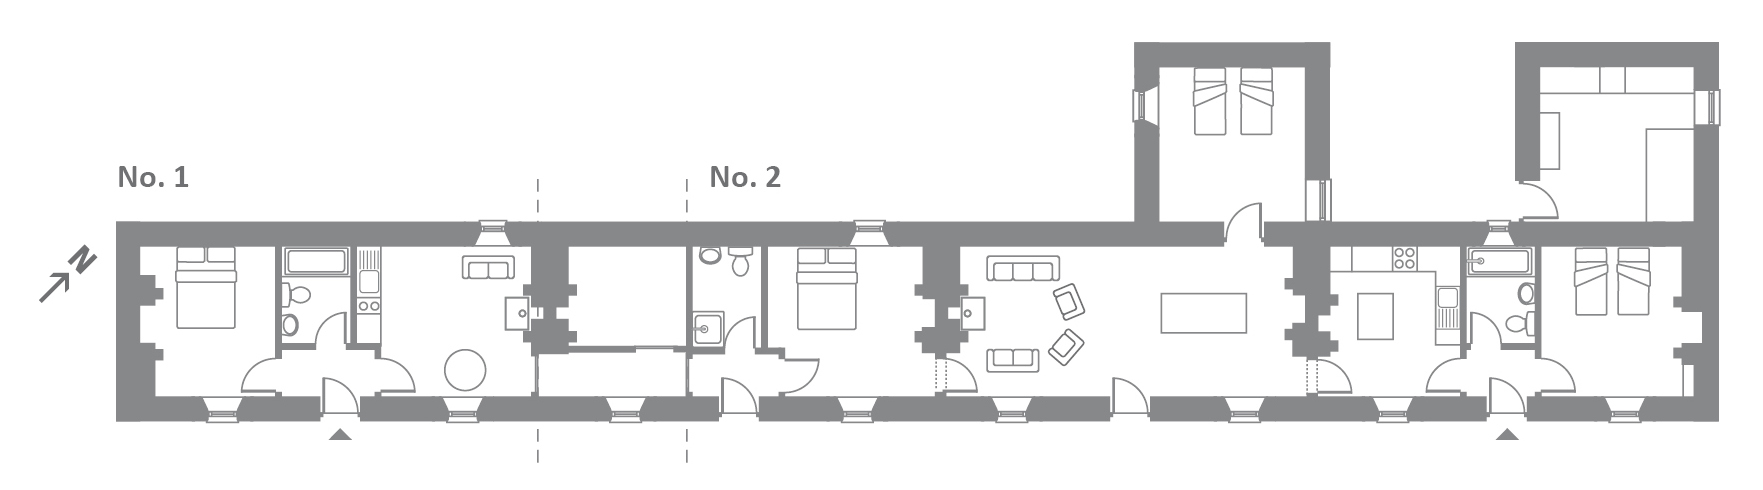 hight resolution of floor plans